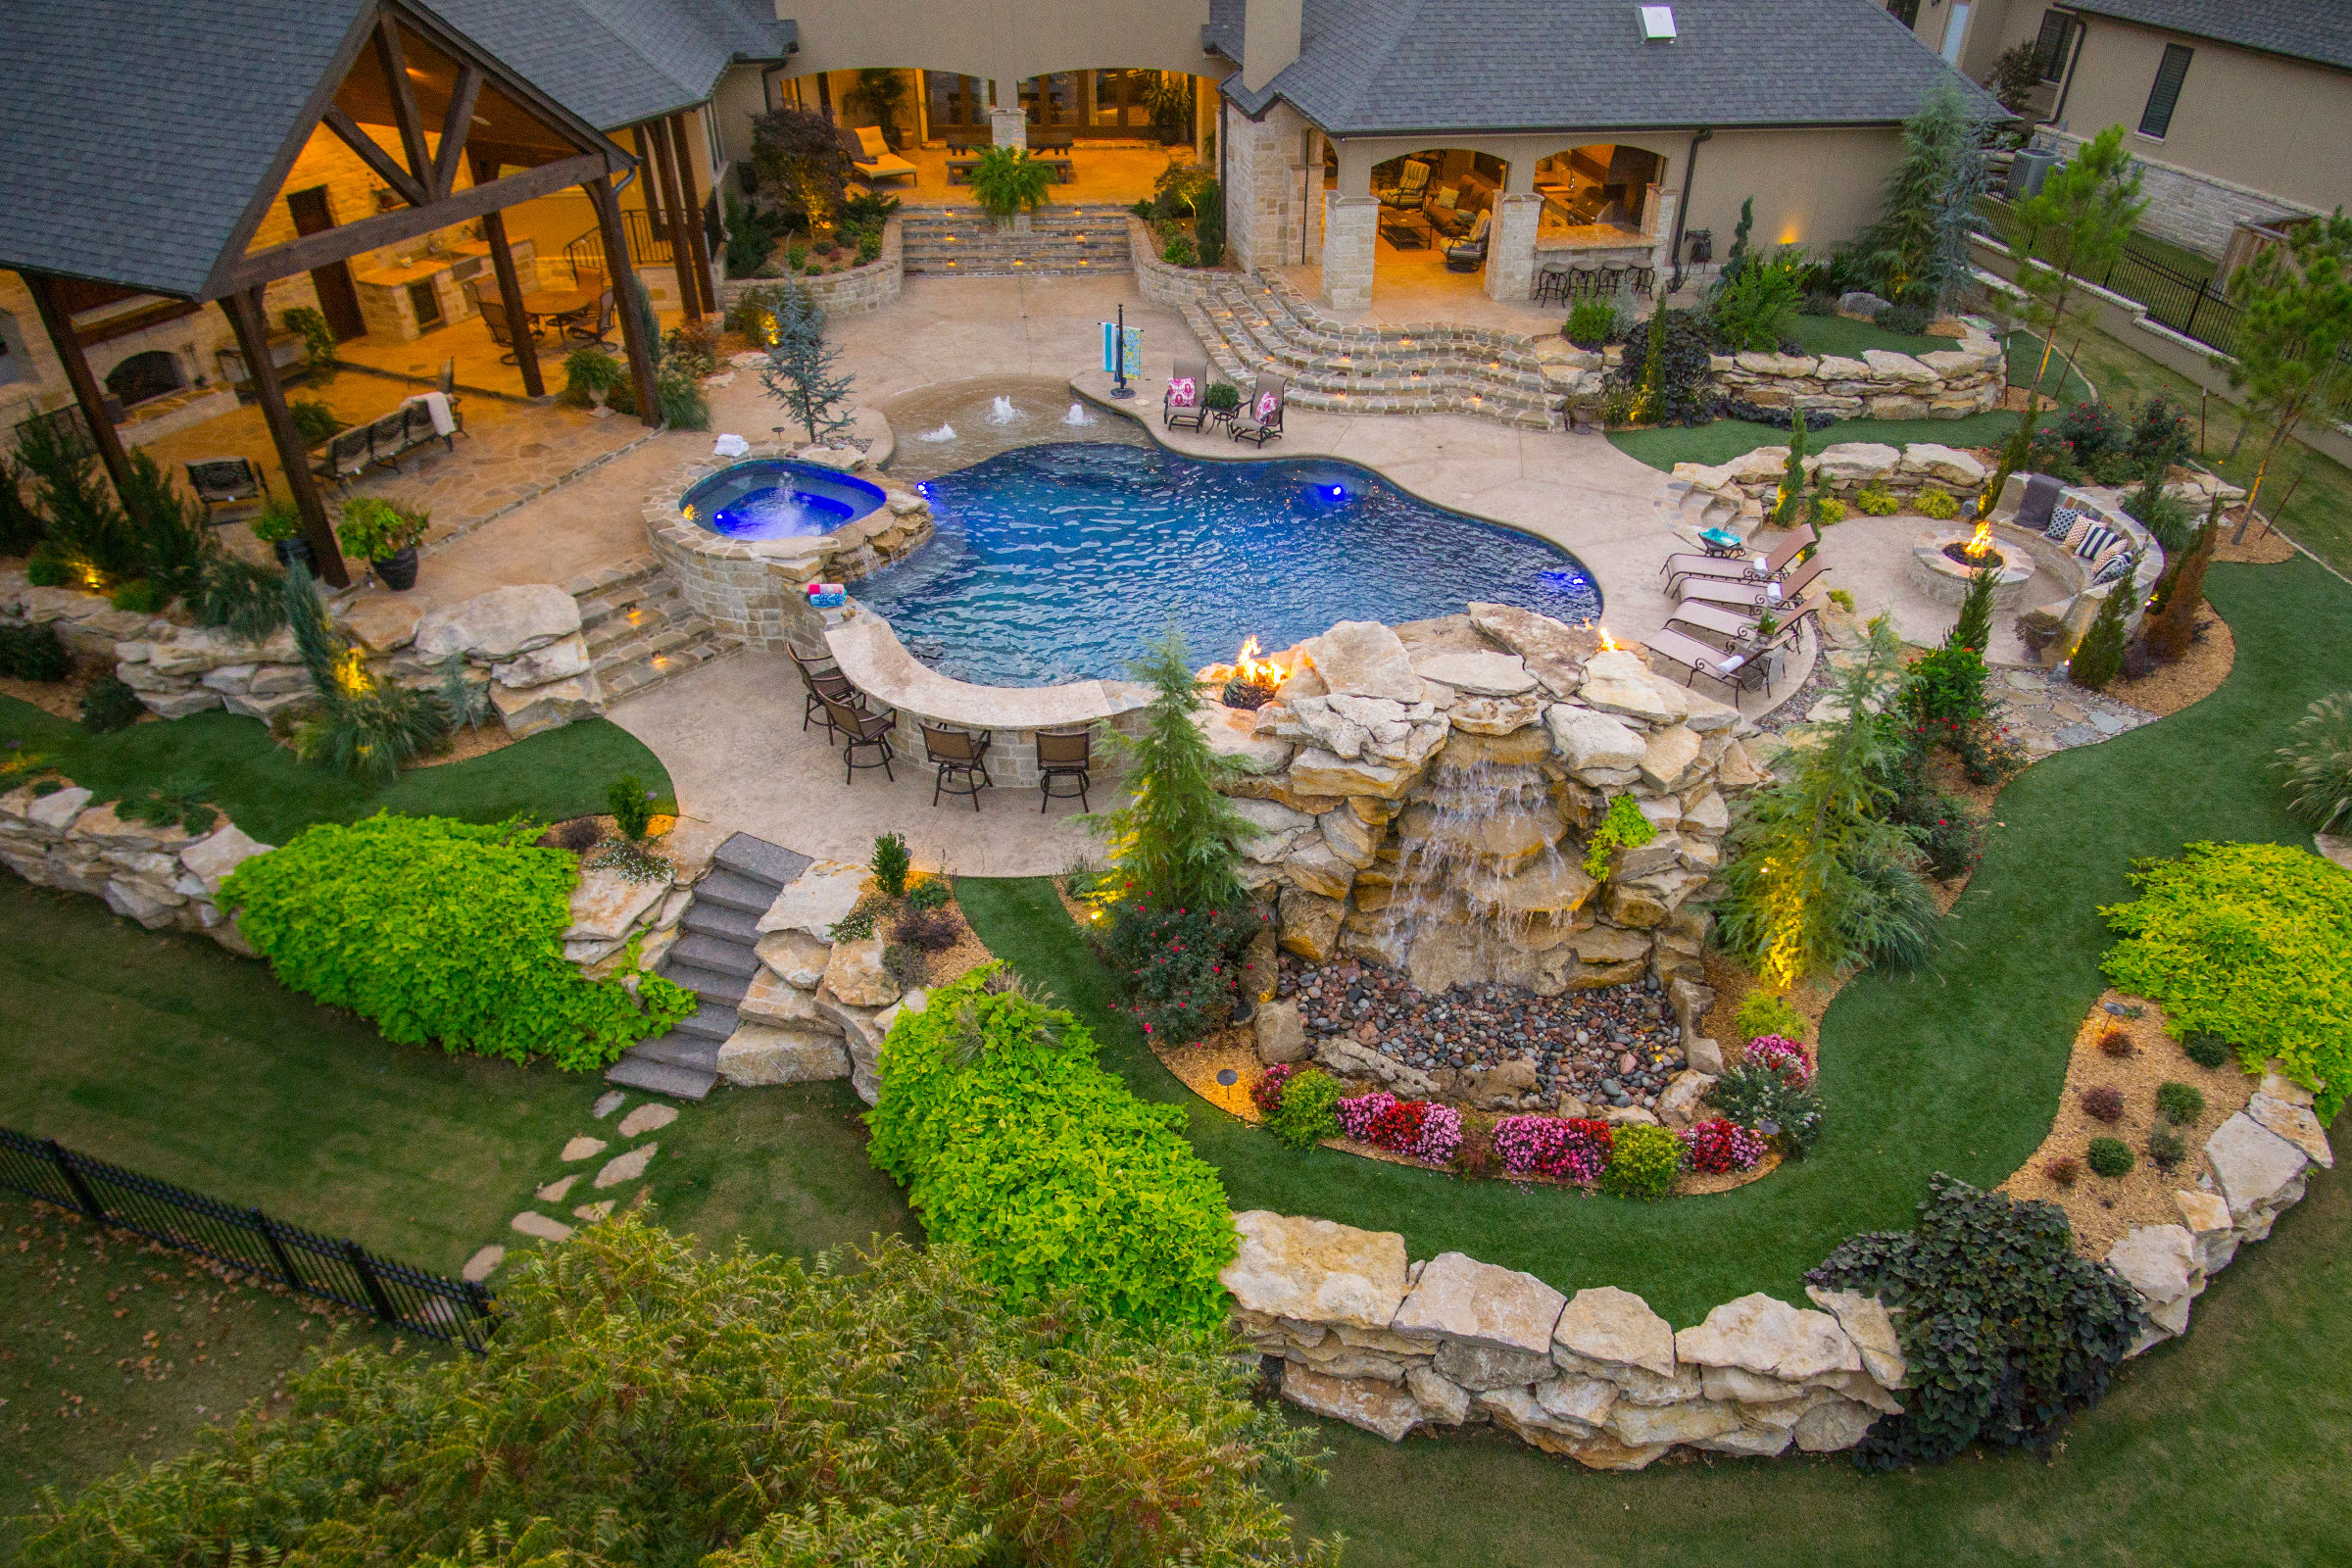 Custom pool Photographed in Tulsa Oklahoma